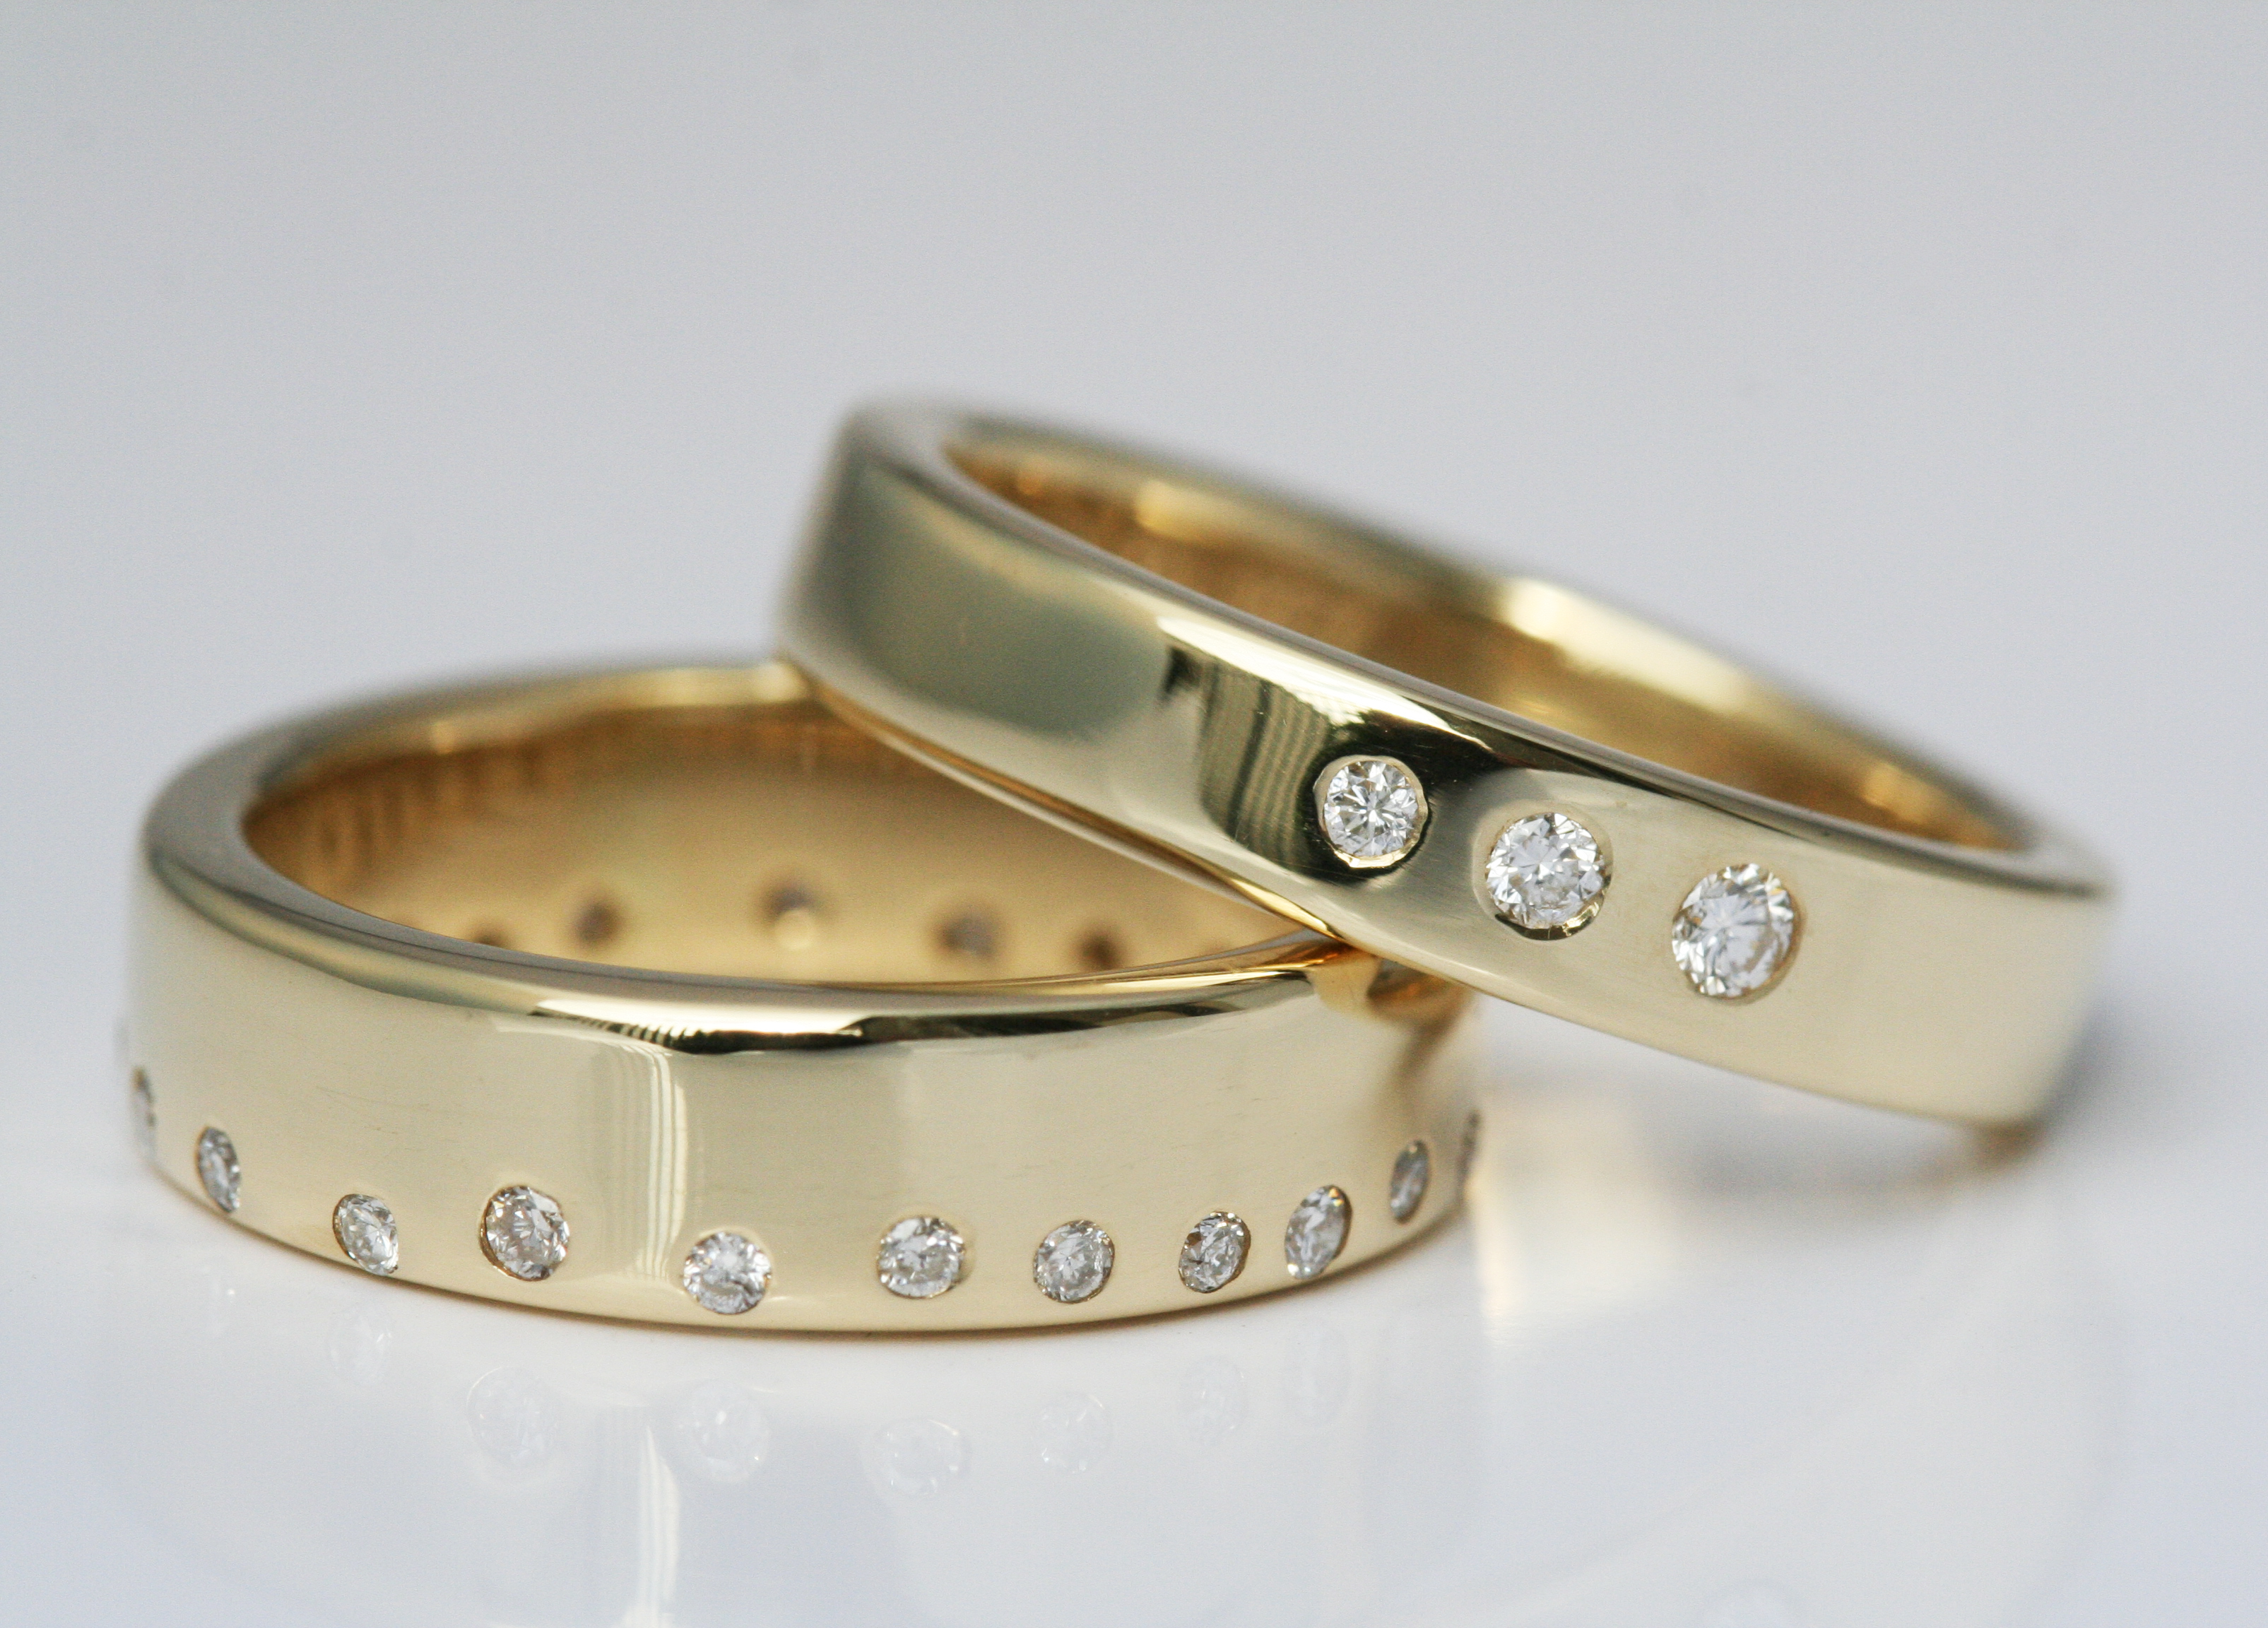 18ct diamond set wedding bands